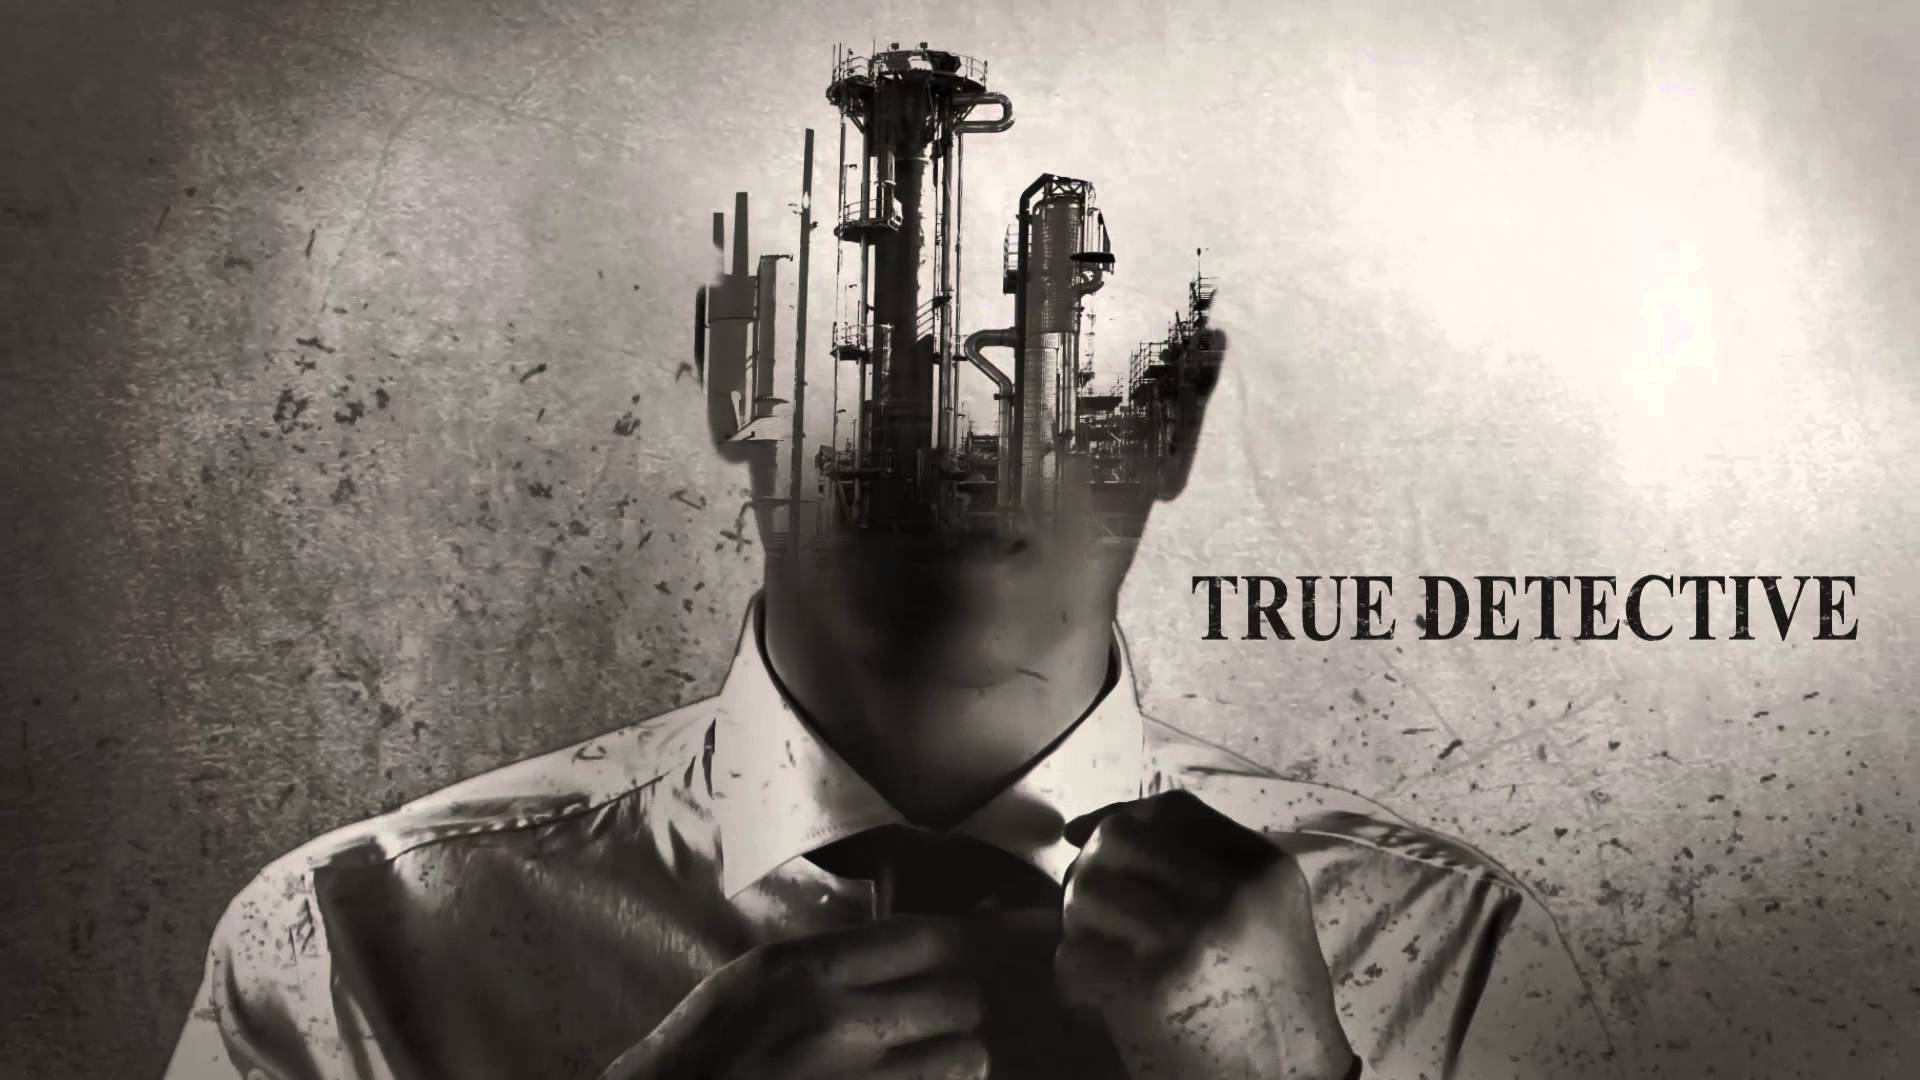 Superman Hd Wallpaper True Detective Wallpapers High Resolution And Quality Download